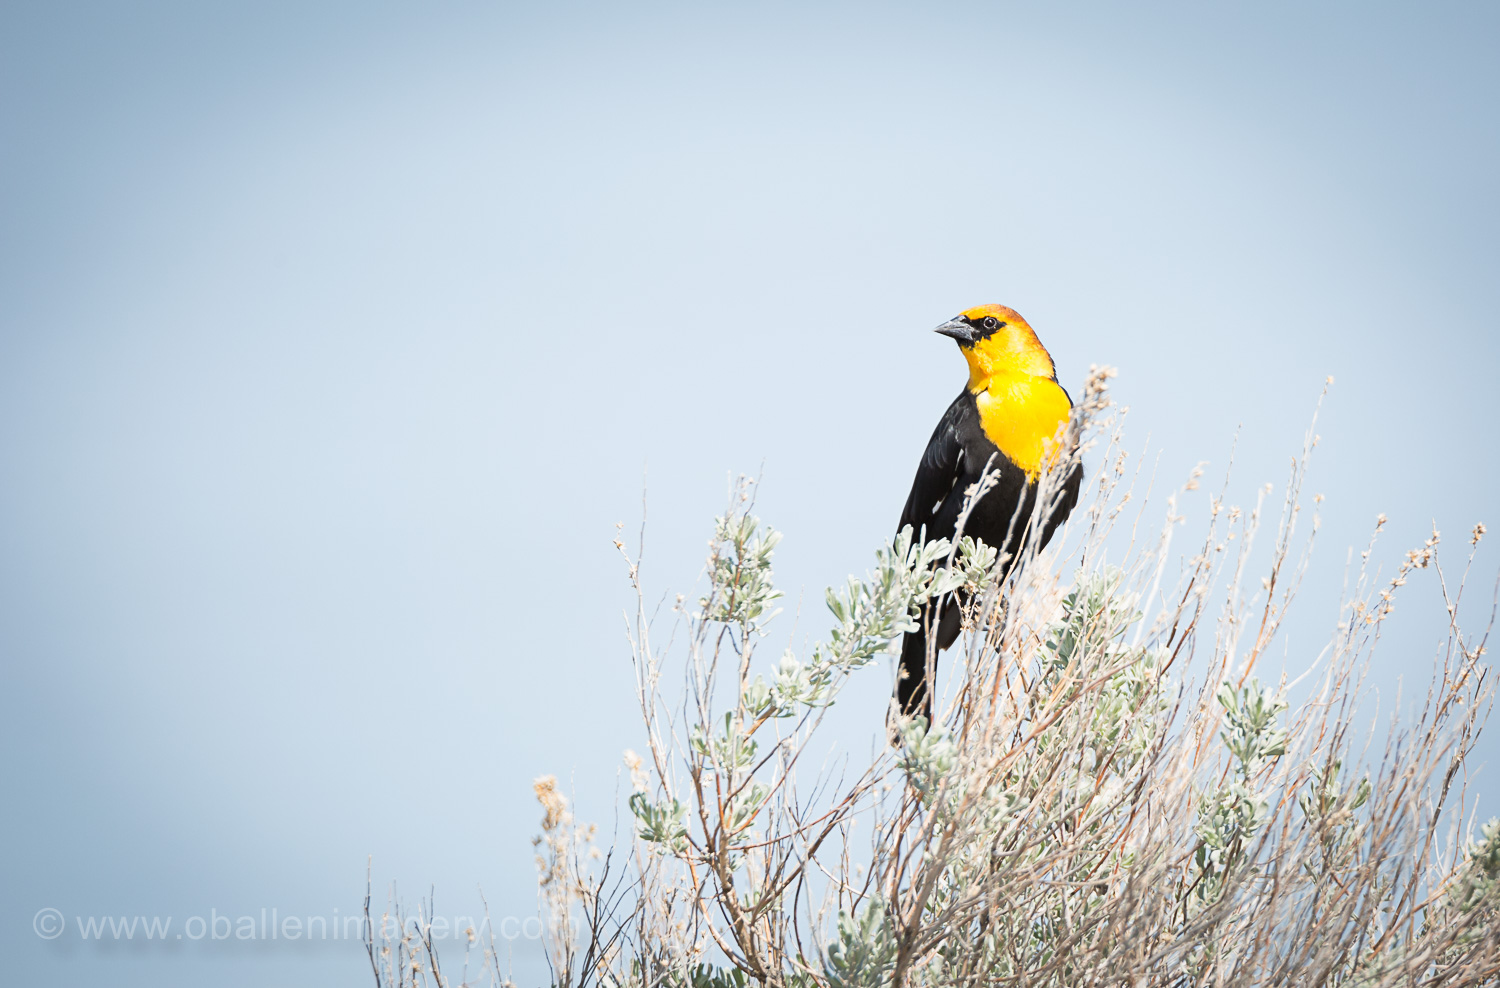 I am thinking a yellow headed blackbird. What do you think?